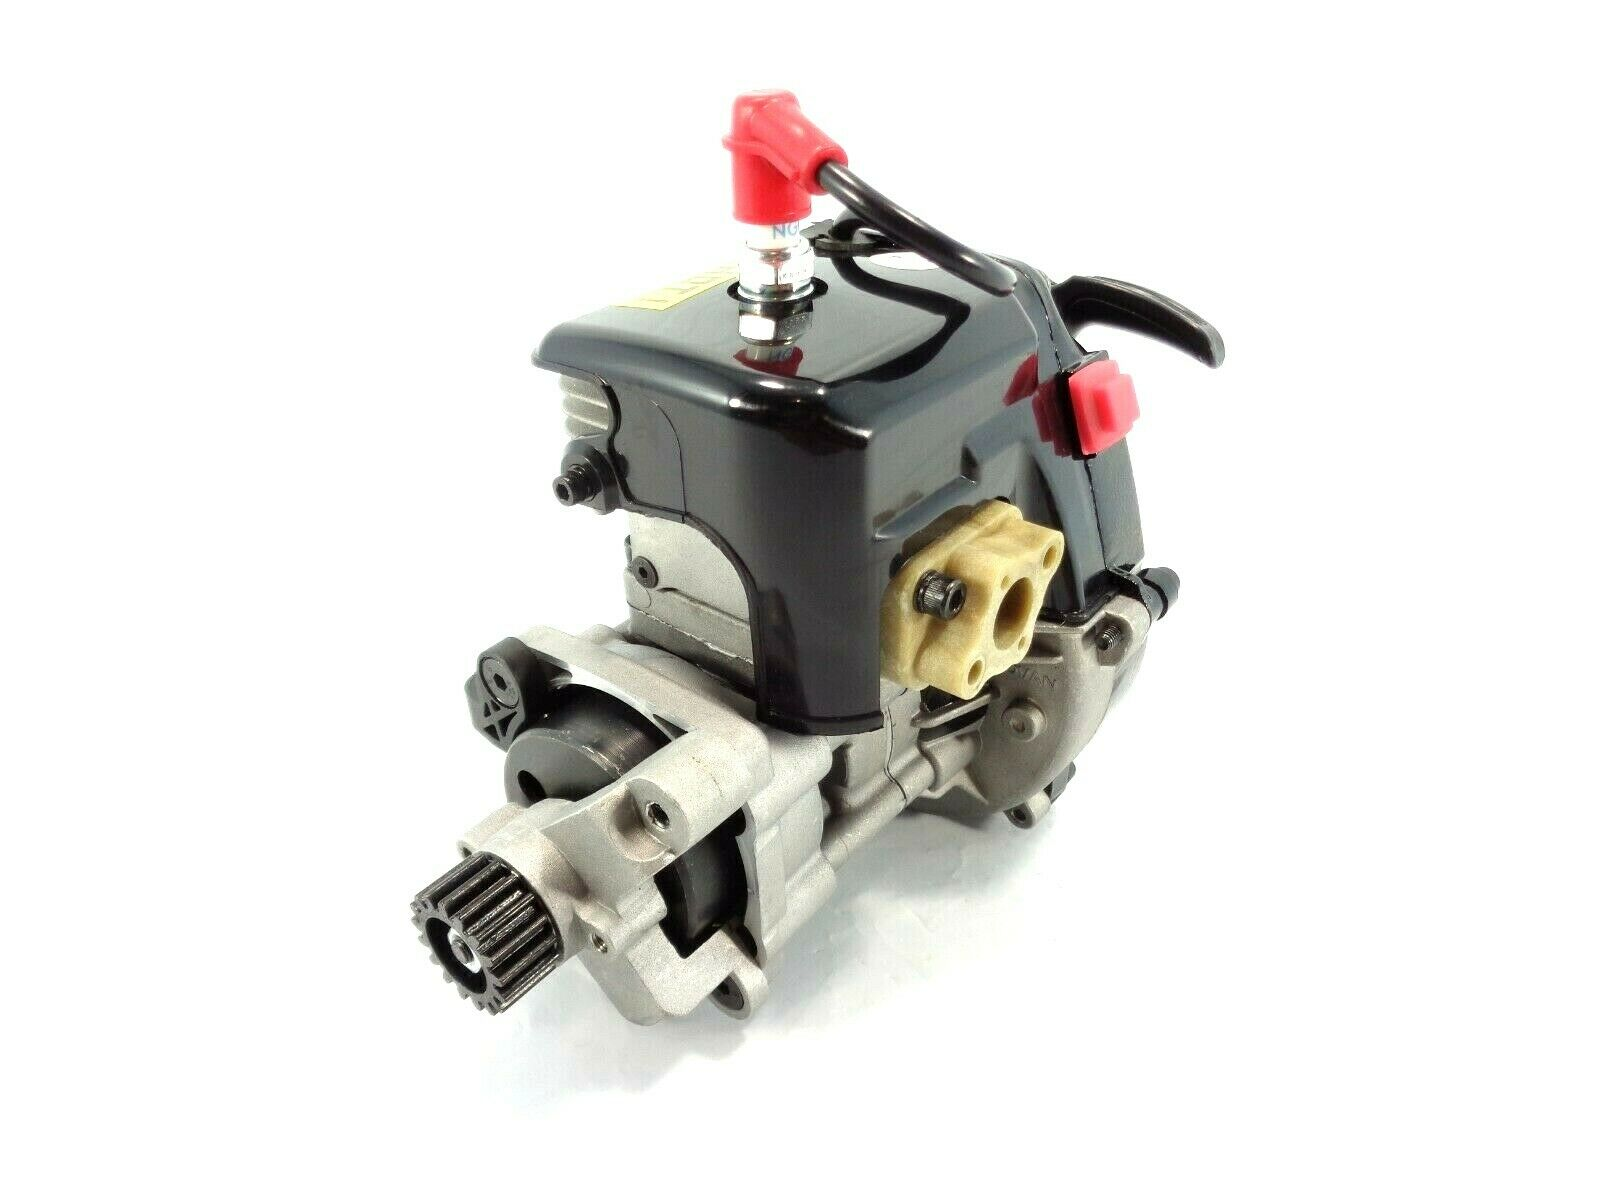 nuovo  ROVAN 36cc 4 BOLT completare ENGINE MOTOR HPI BAJA 5B re MOTOR WITH CLUTCH  punti vendita